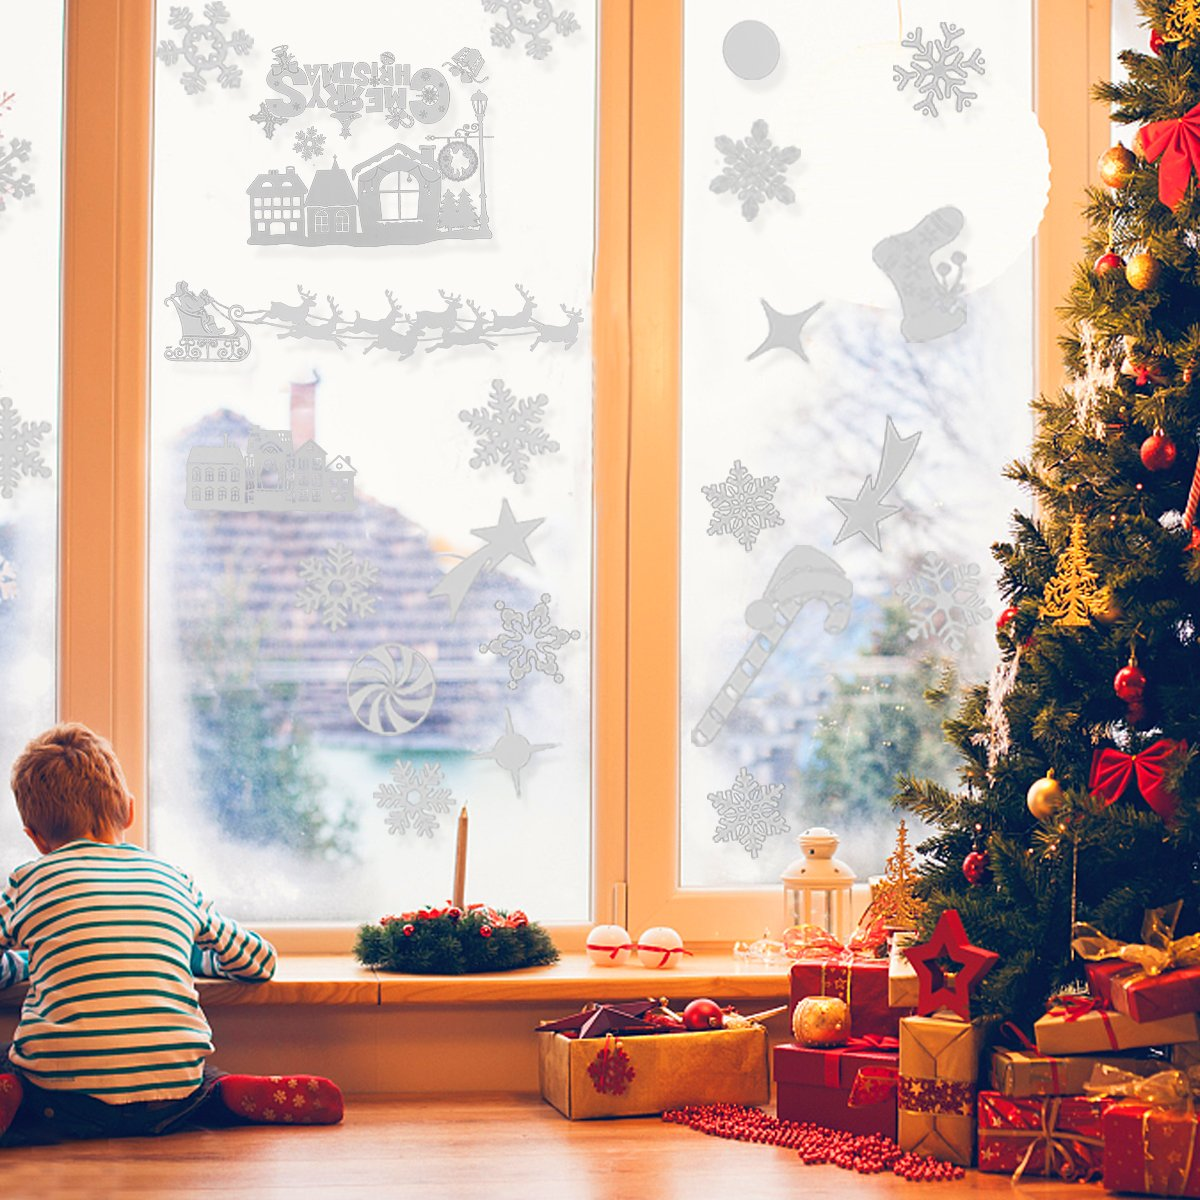 Christmas Window Stickers,White Snowflakes reindeer Window Clings Decal Stickers Xmas Winter Wonderland Decorations Ornaments Party Supplies